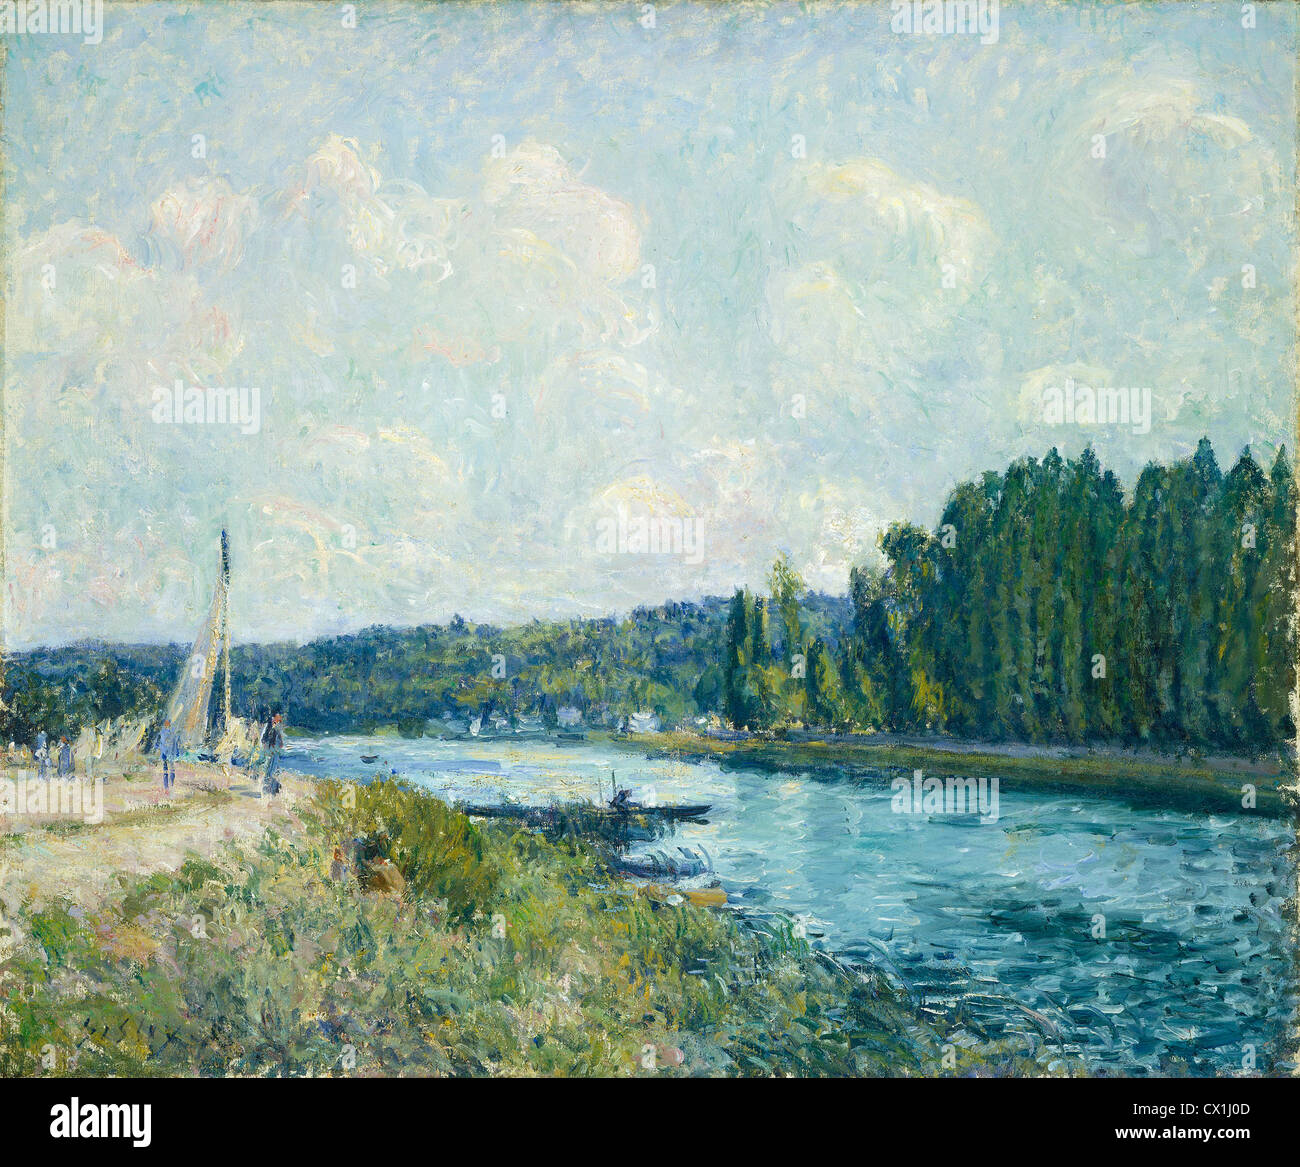 Alfred Sisley, The Banks of the Oise, French, 1839 - 1899, 1877/1878, oil on canvas - Stock Image